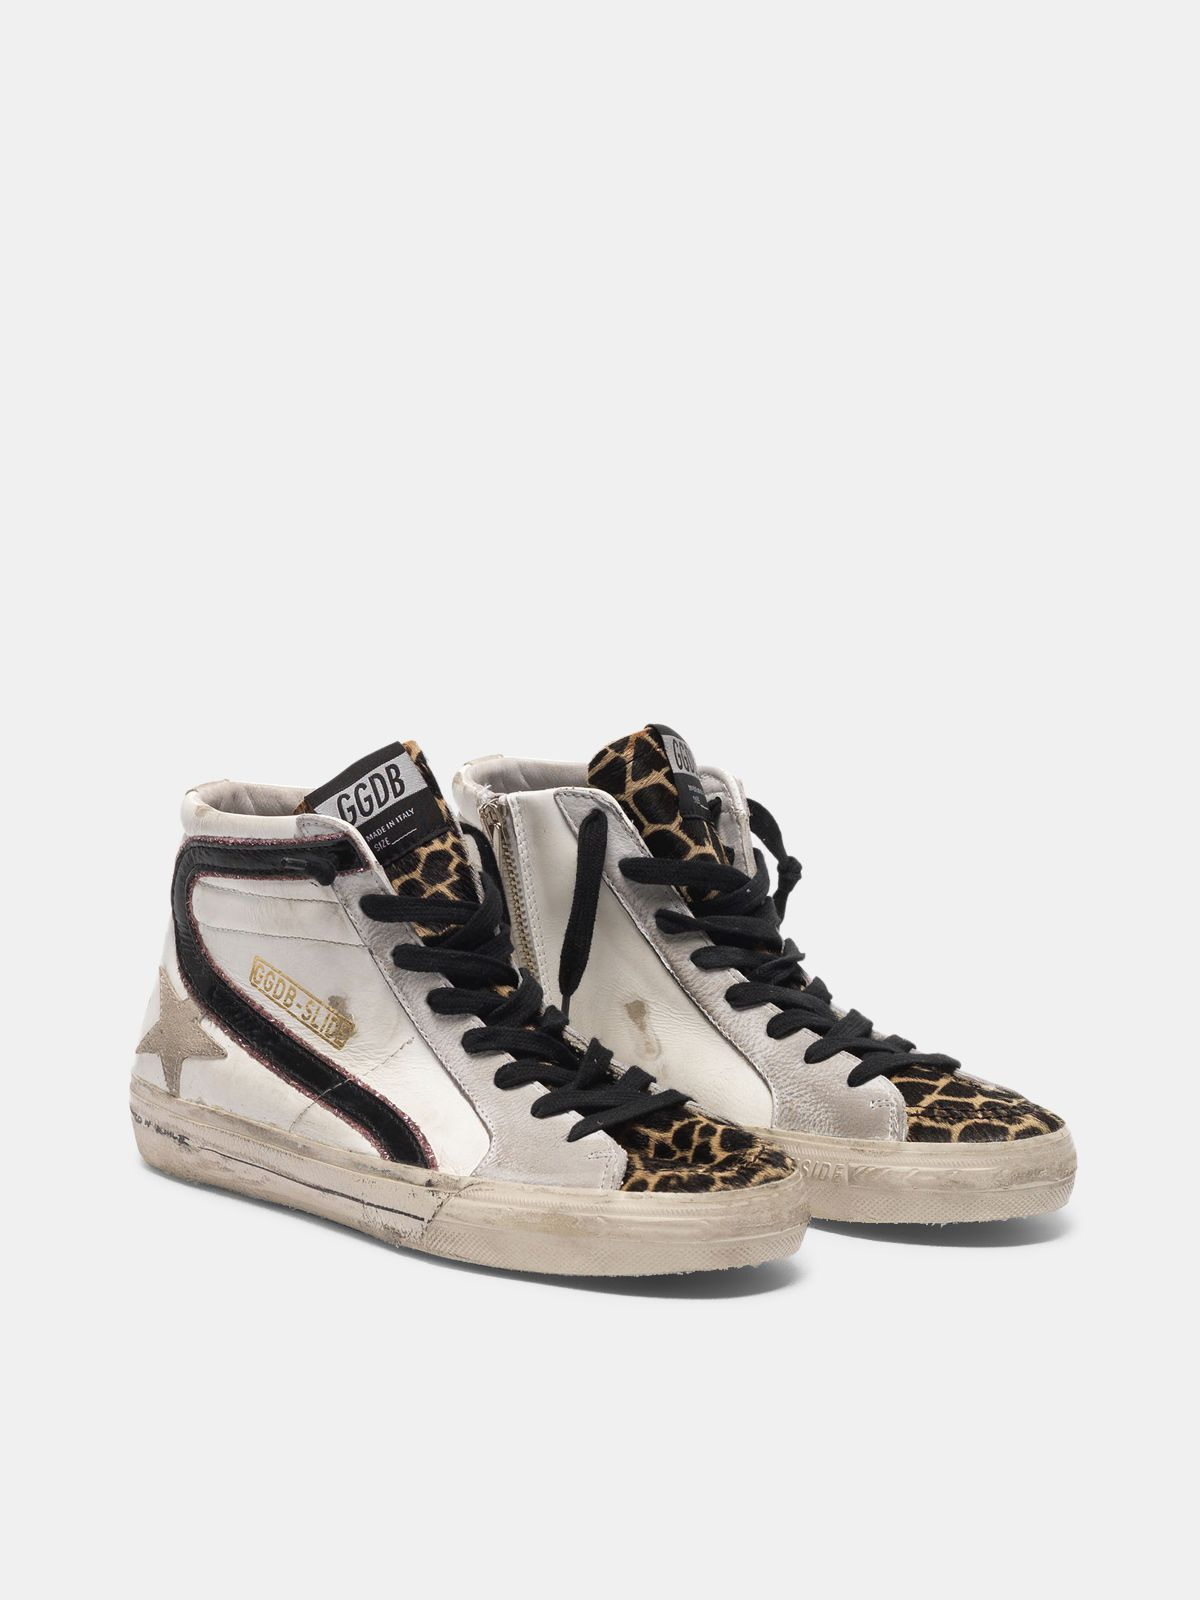 Golden Goose - Slide sneakers with leopard-print pony skin insert and glitter detail in